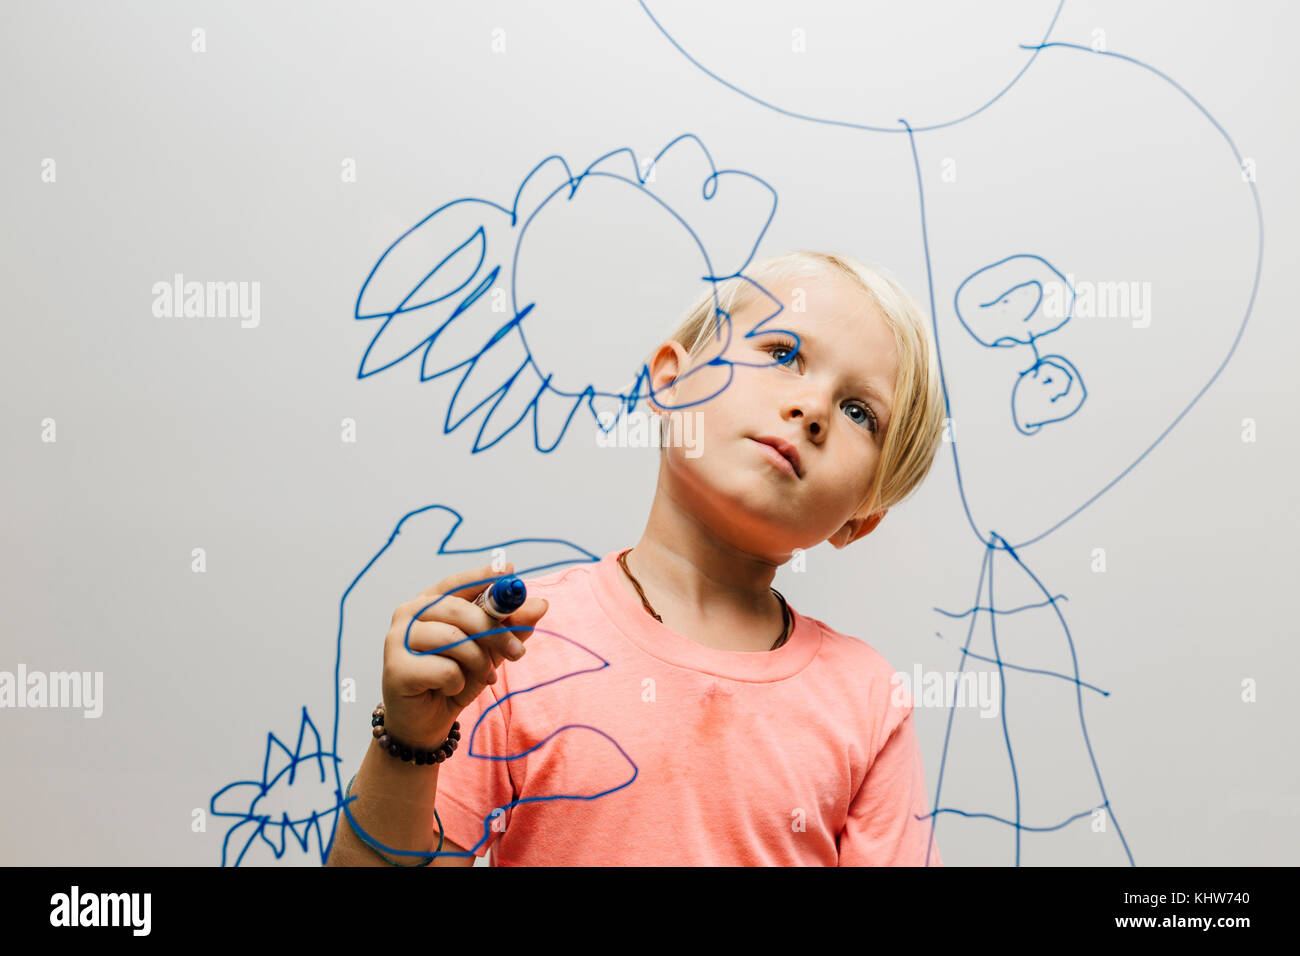 Boy admiring his marker pen drawing on glass wall - Stock Image